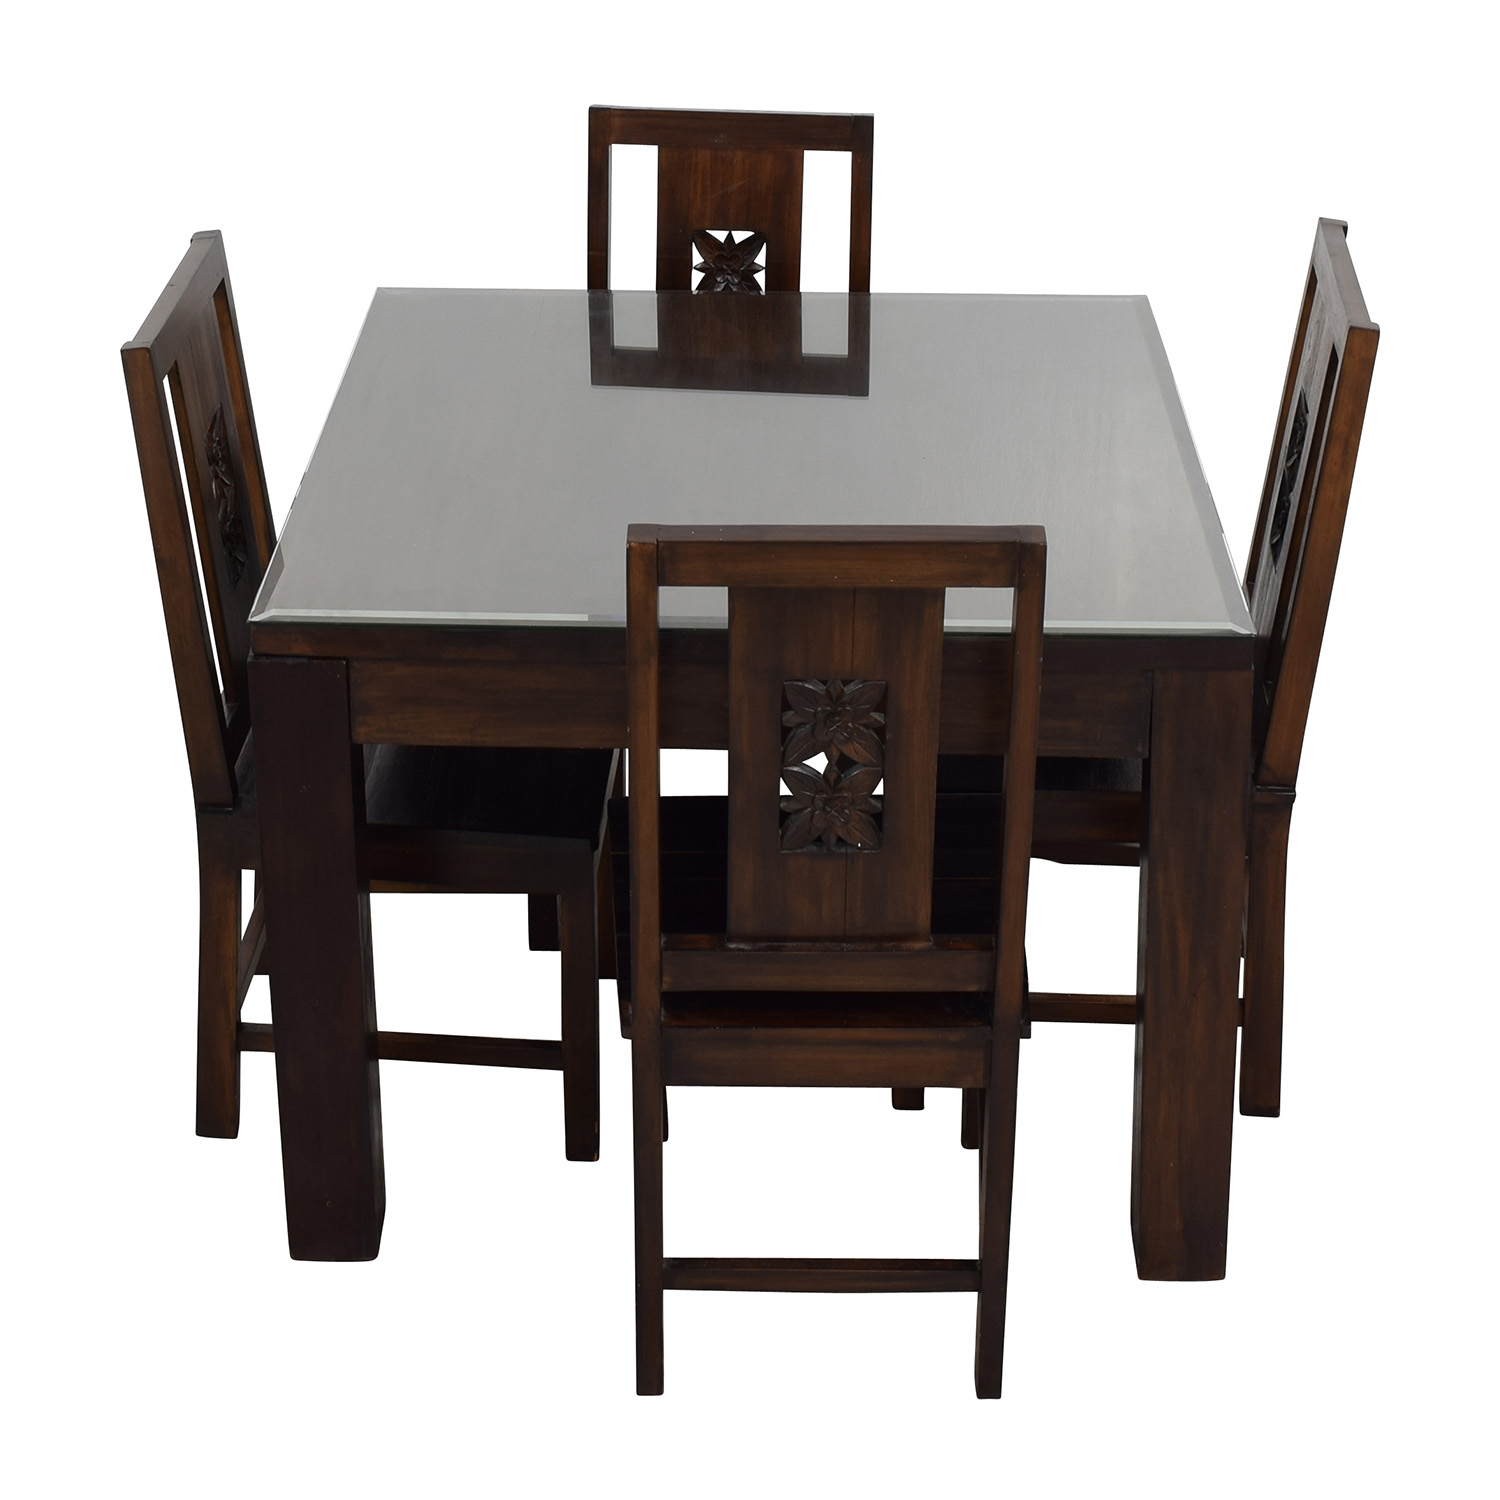 Balinese Teak Dining Table Set dimensions